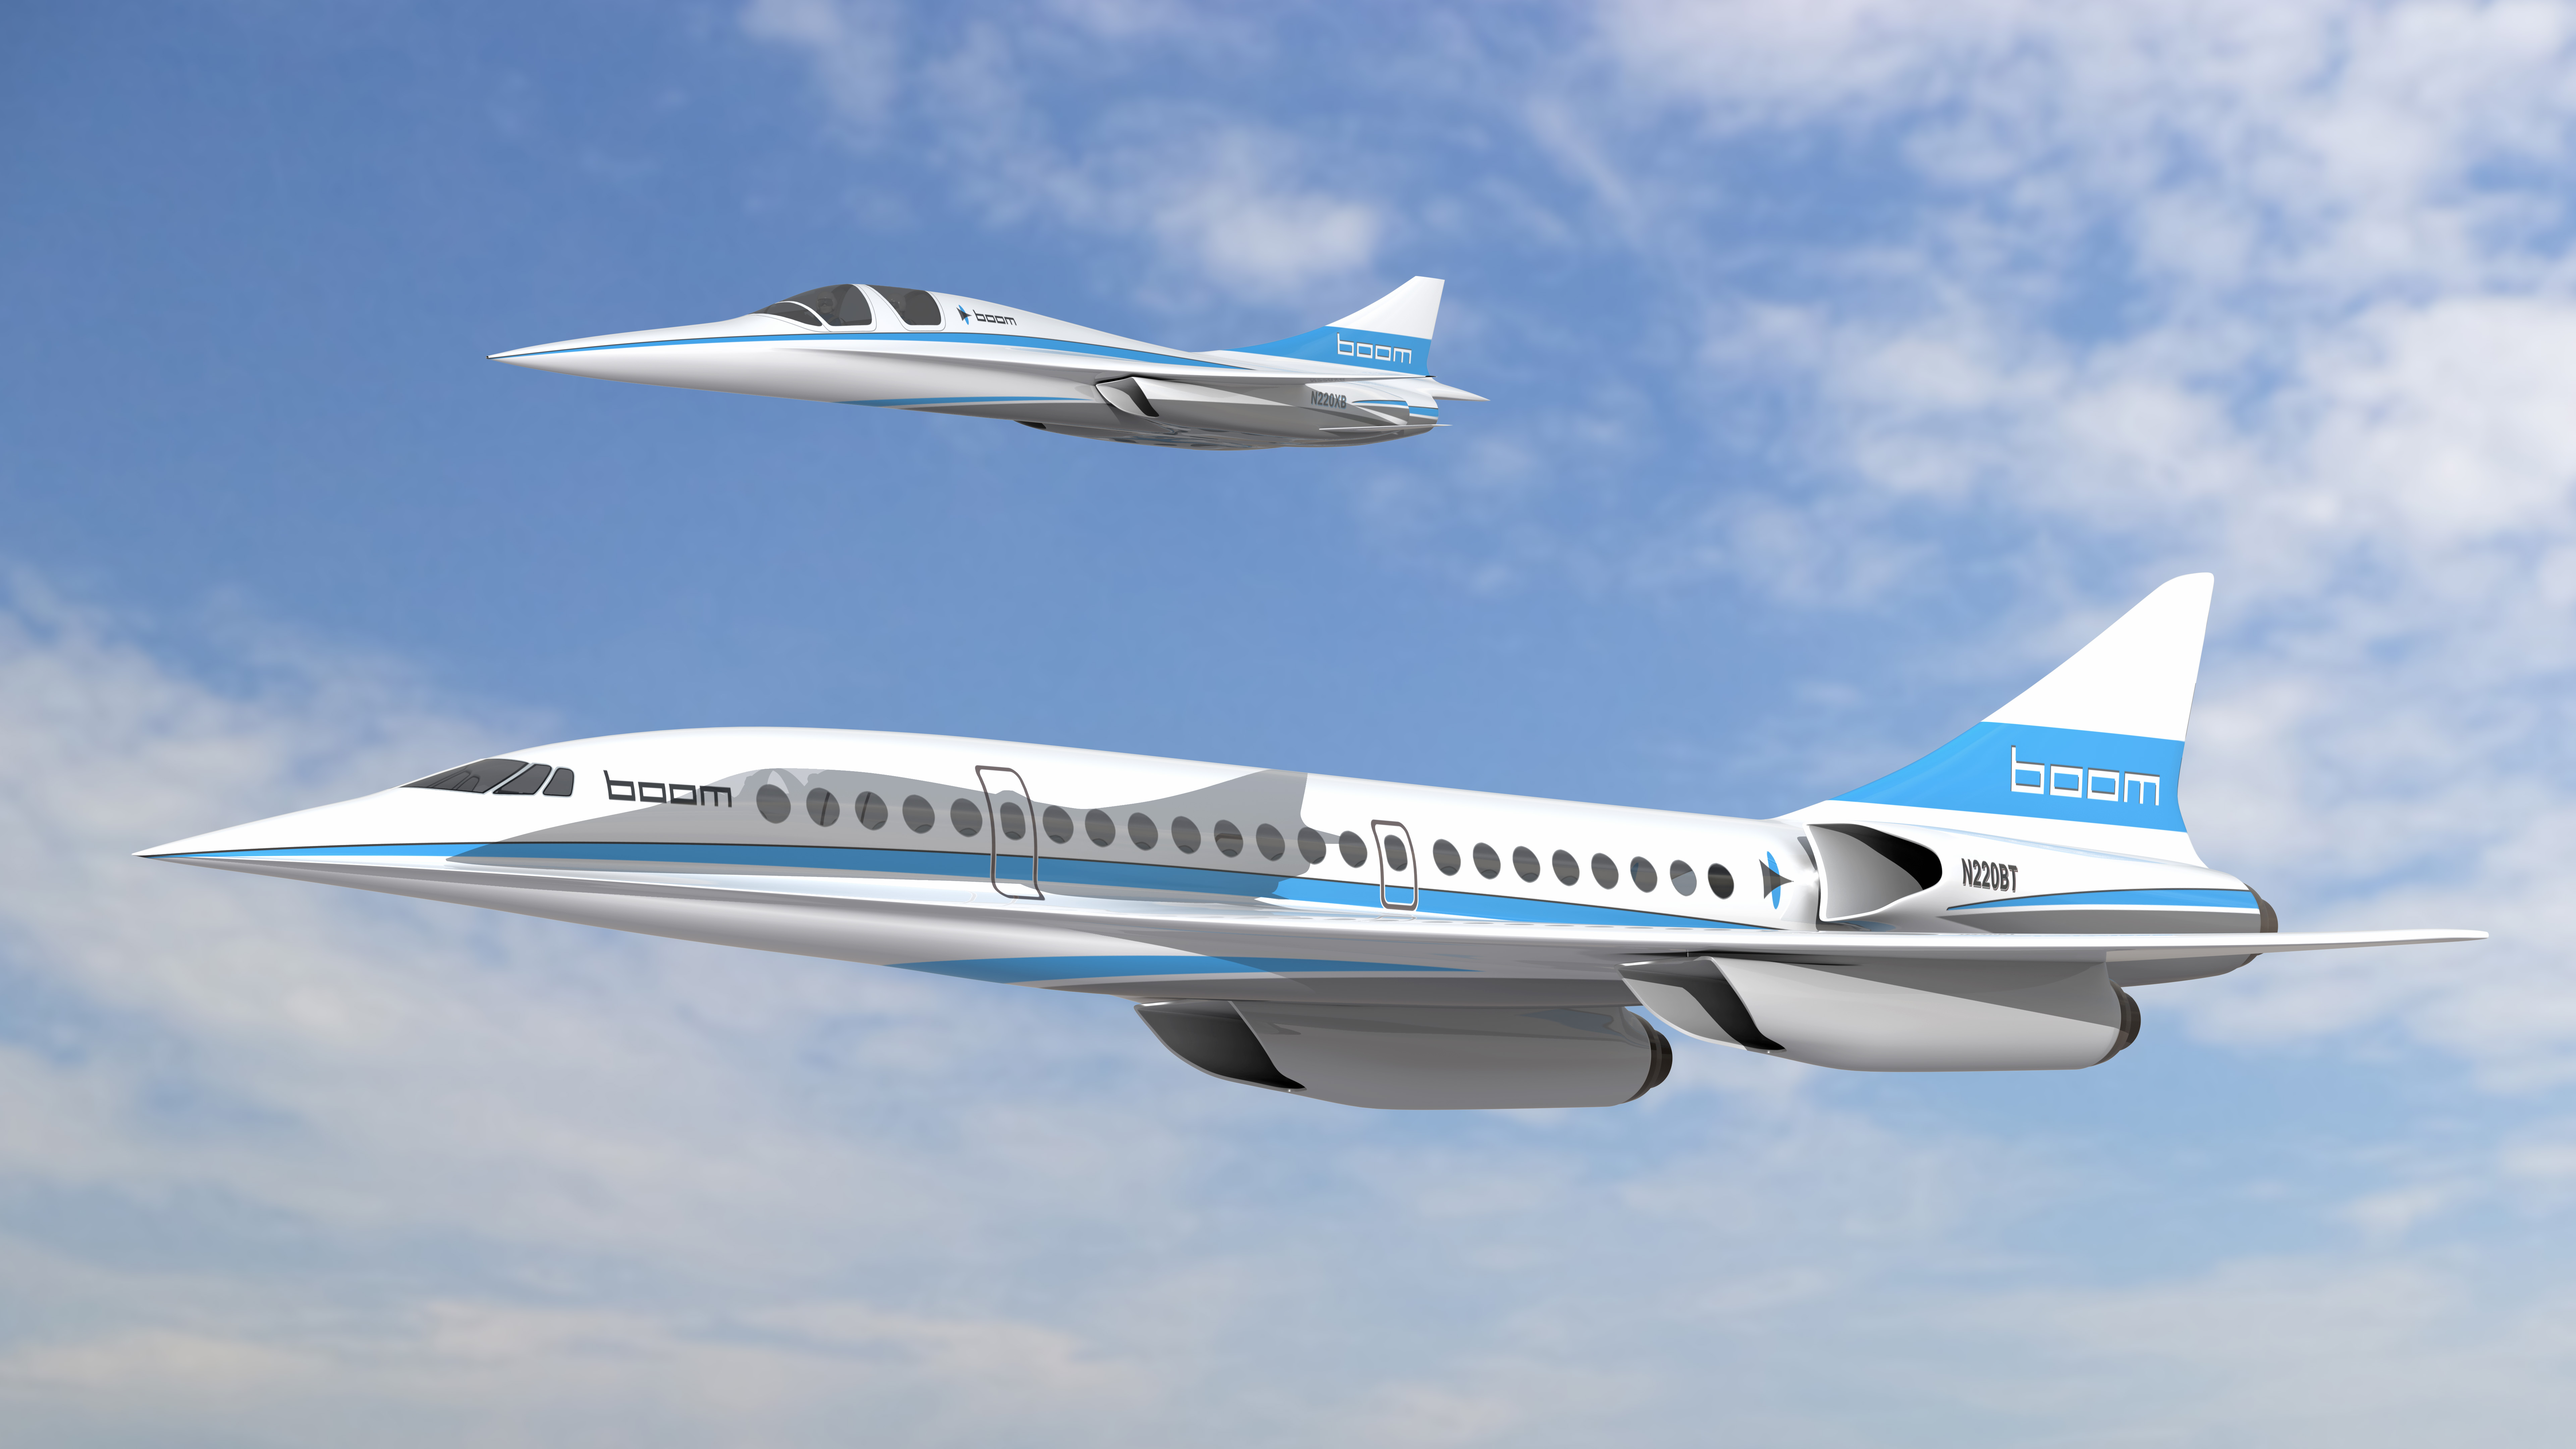 This tiny supersonic jet could be the next generation concorde